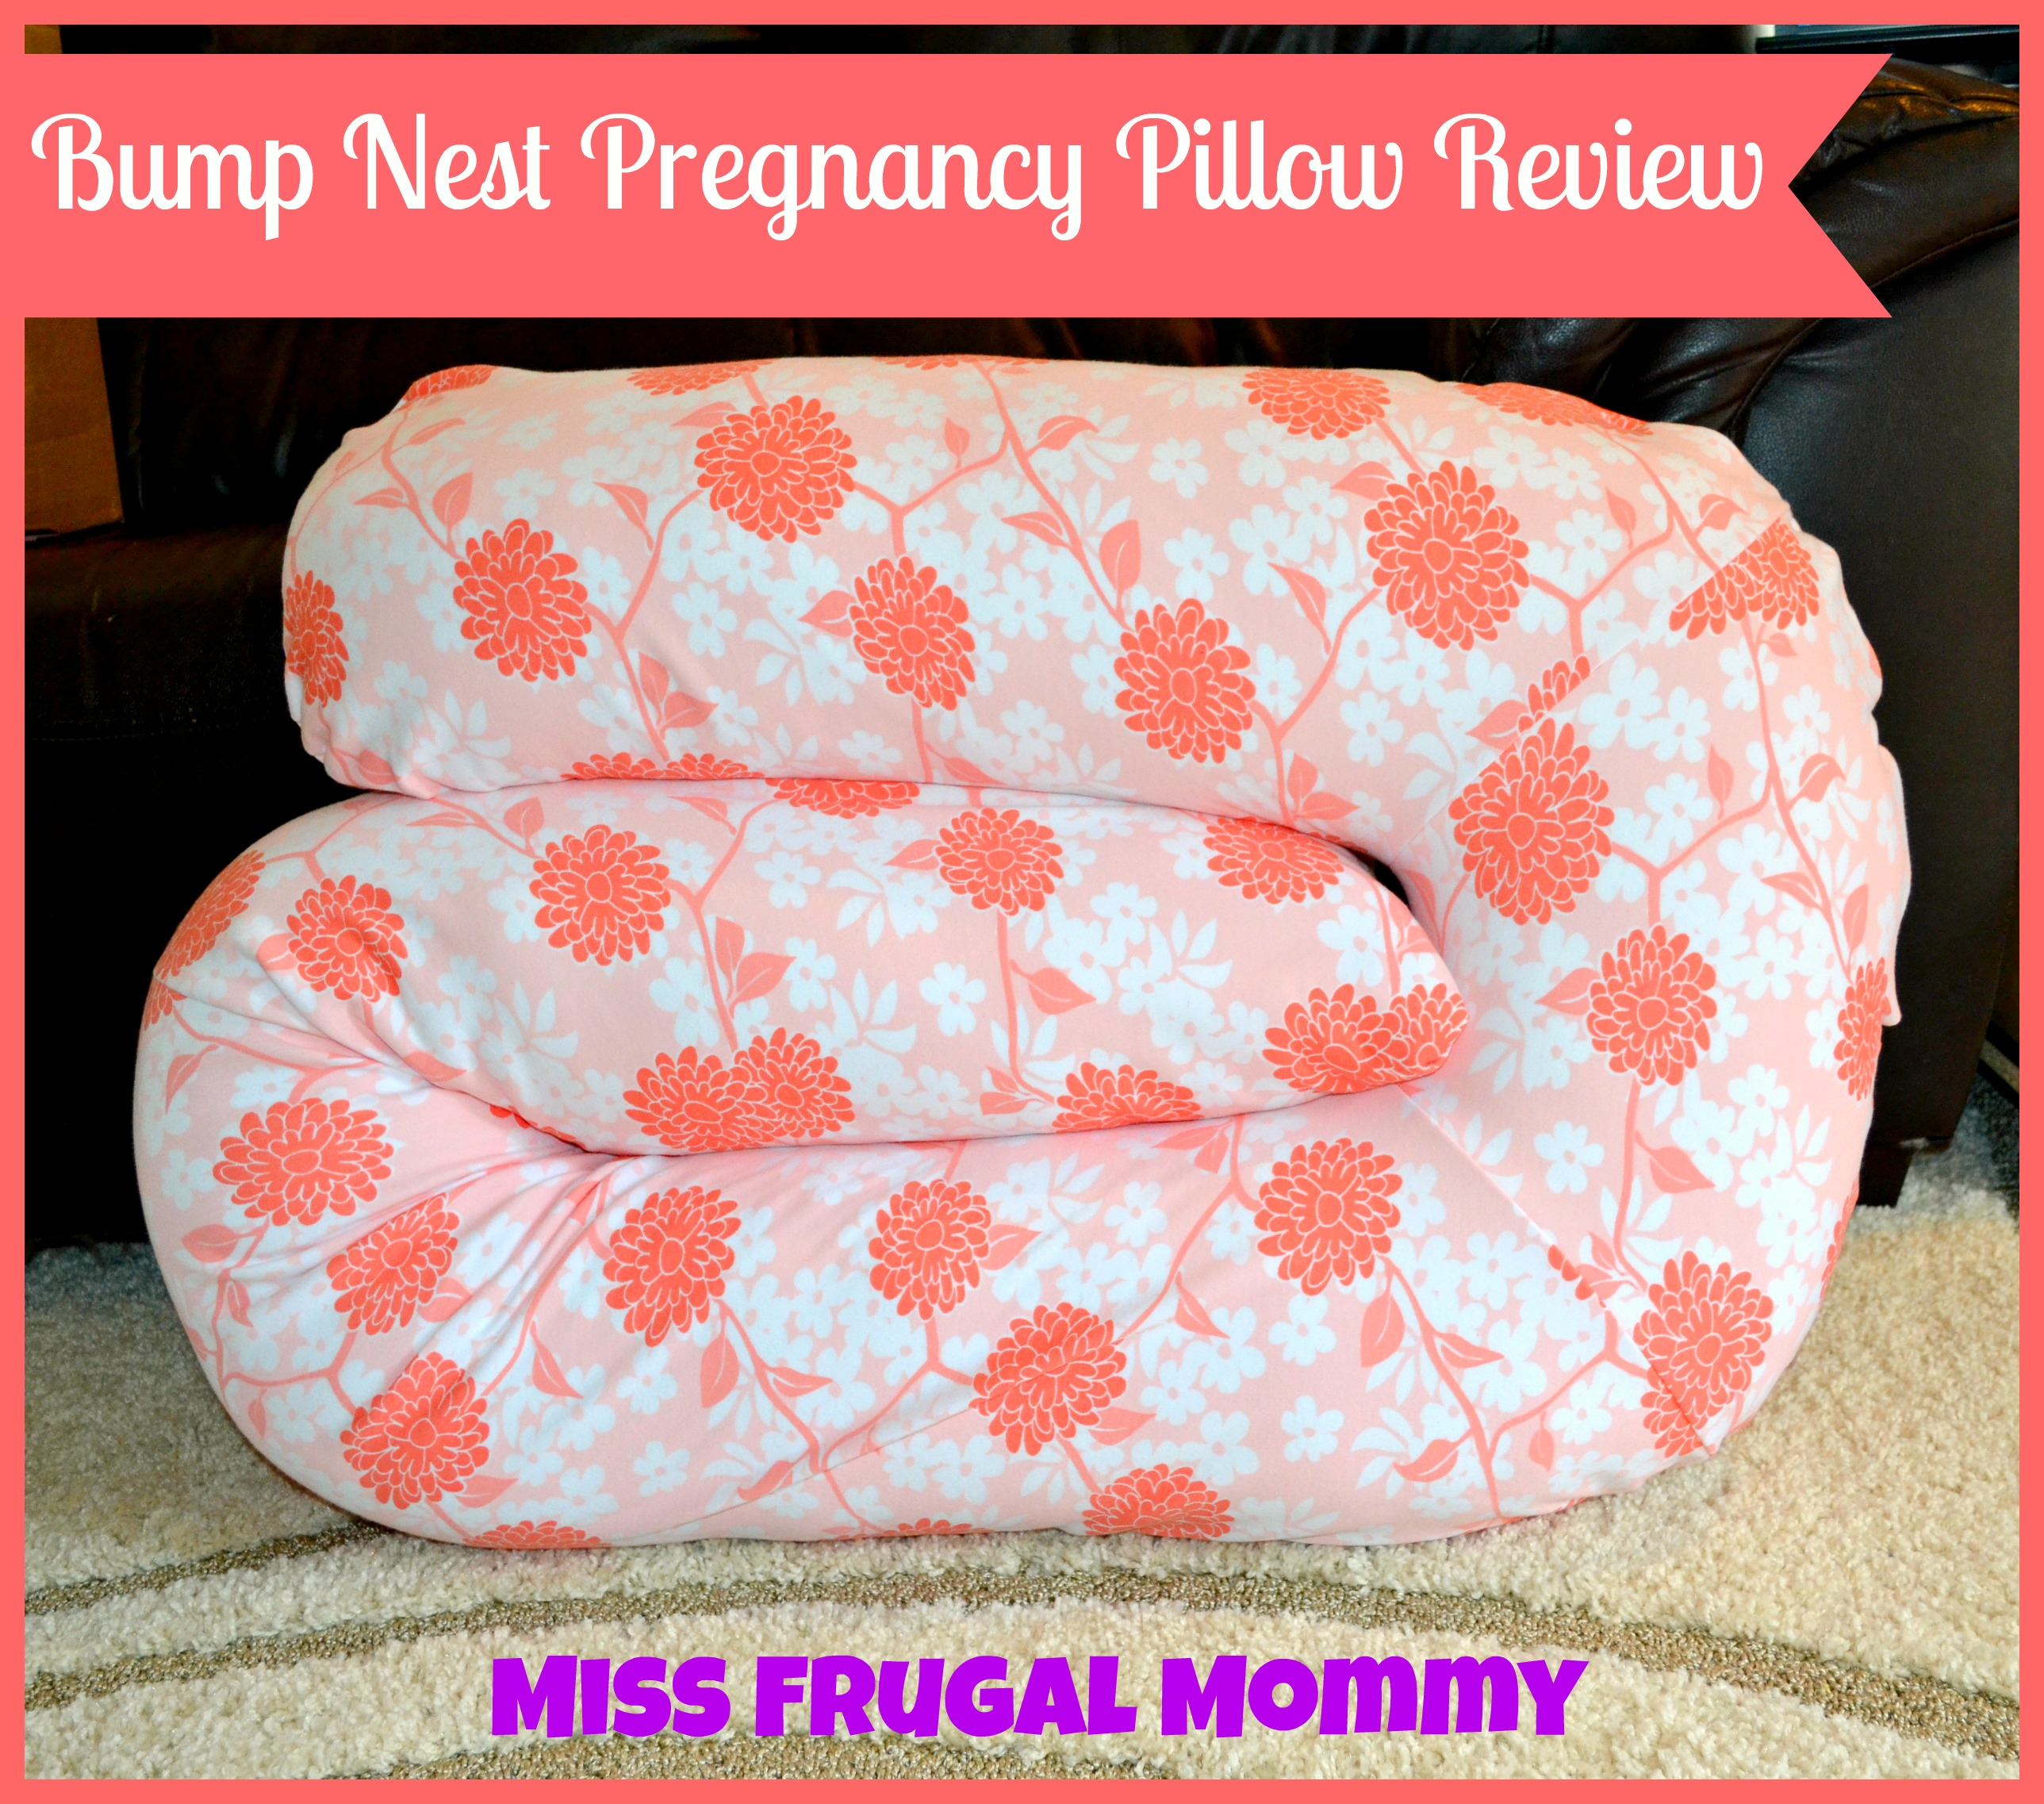 Bump Nest Pregnancy Pillow Review (Getting Ready For Baby Gift Guide)